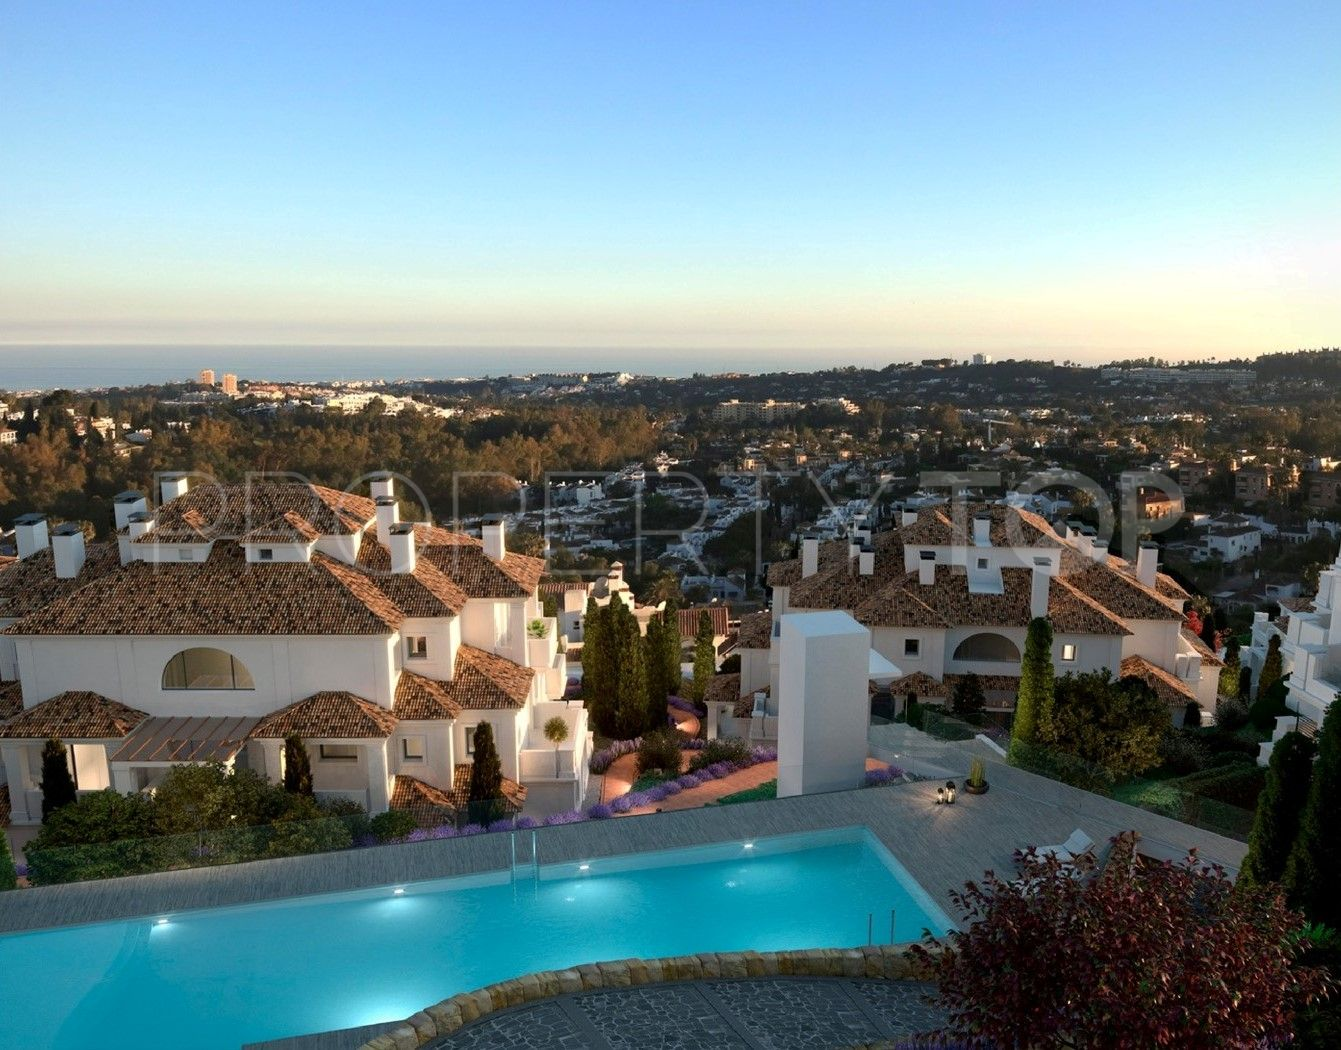 2 bedrooms apartment in nueva andalucia for sale